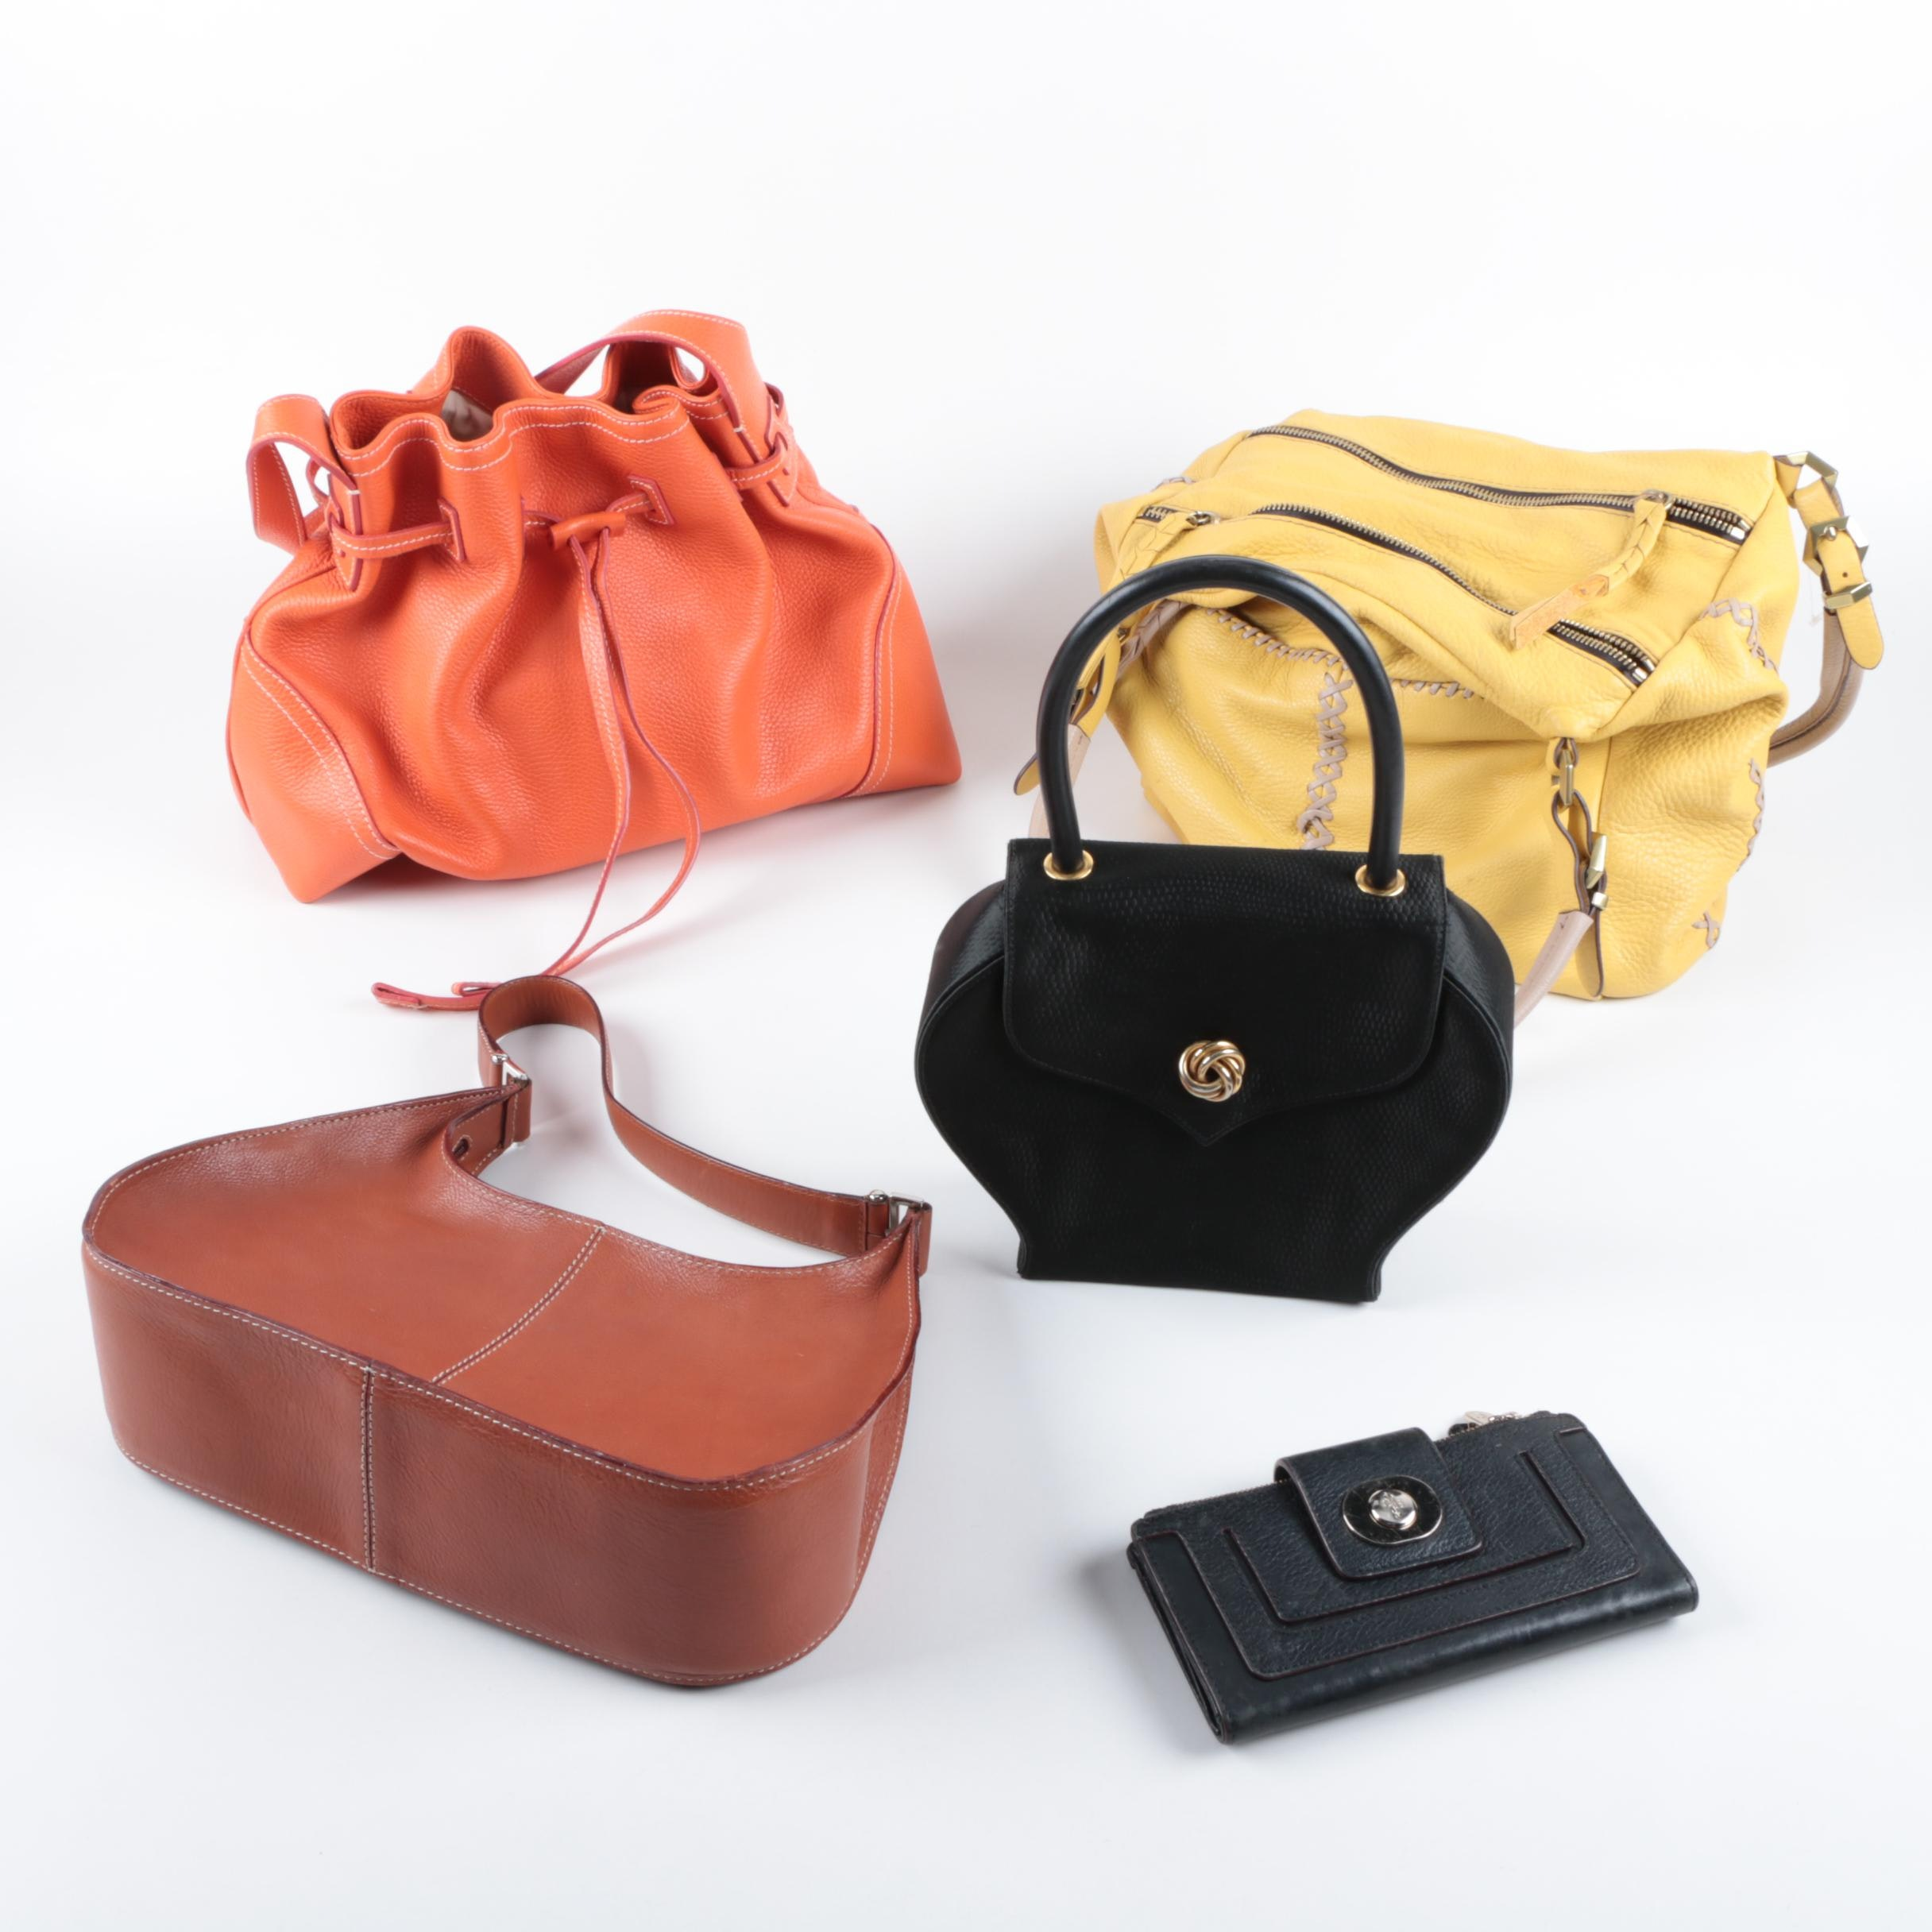 Leather Handbags and Wallet Including Cole Haan and Walter Steiger